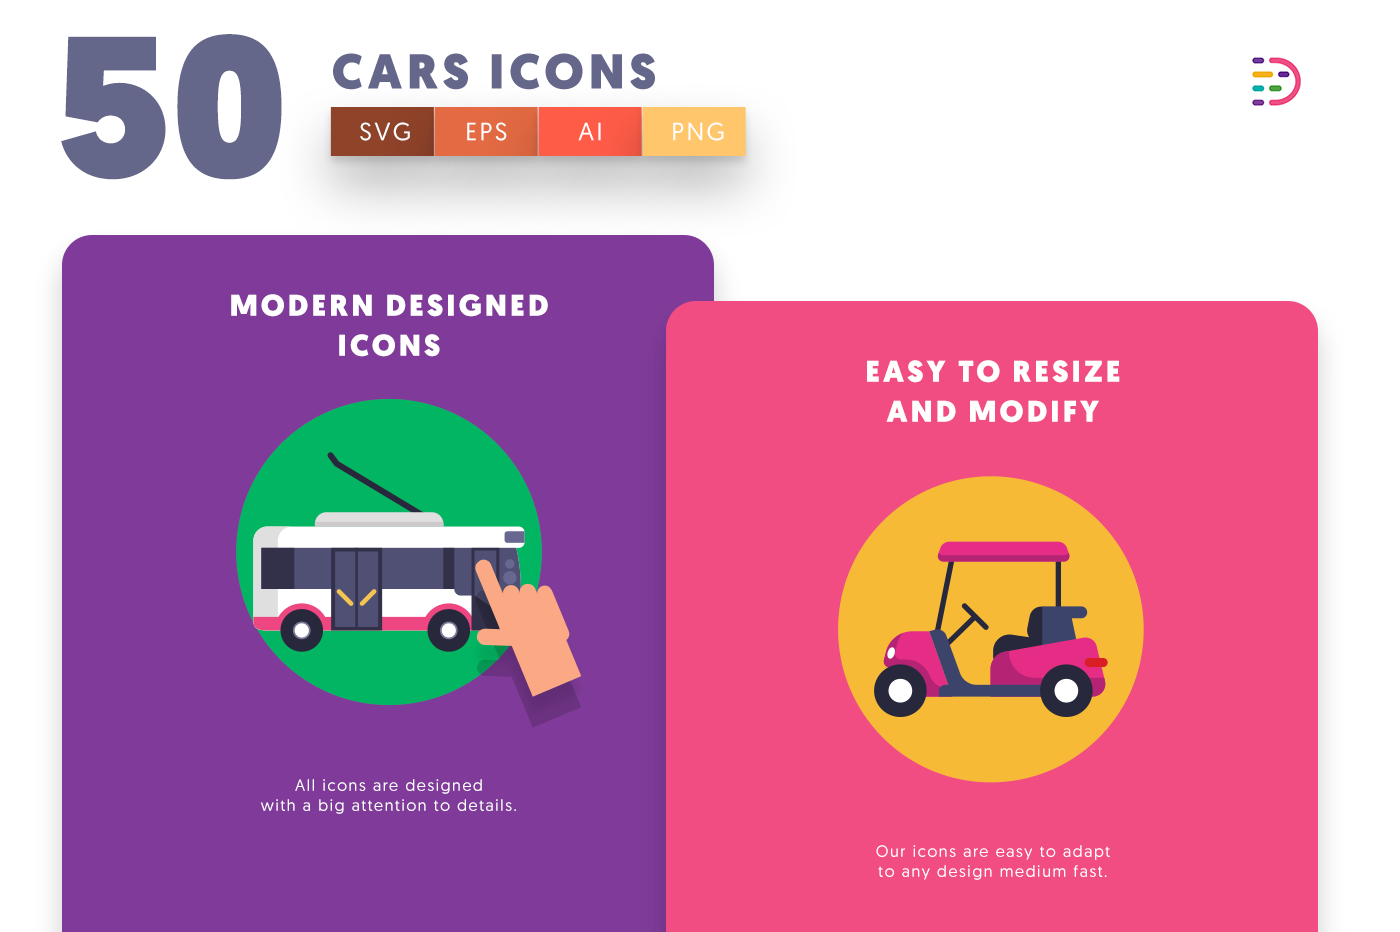 Cars icons png/svg/eps